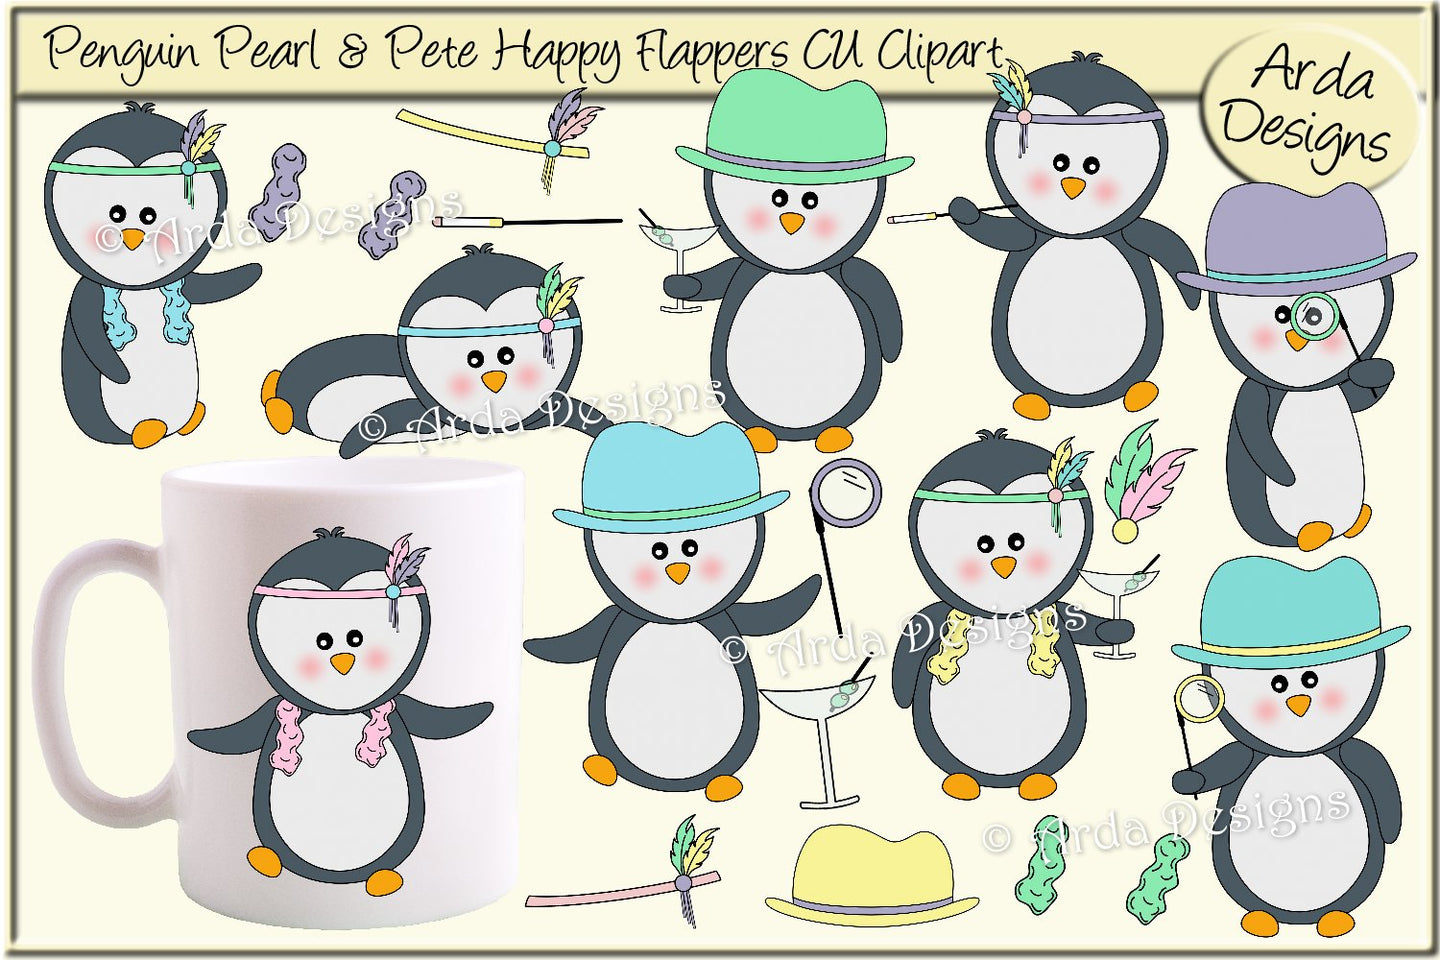 Penguin Pearl & Pete Happy Flappers CU Clipart